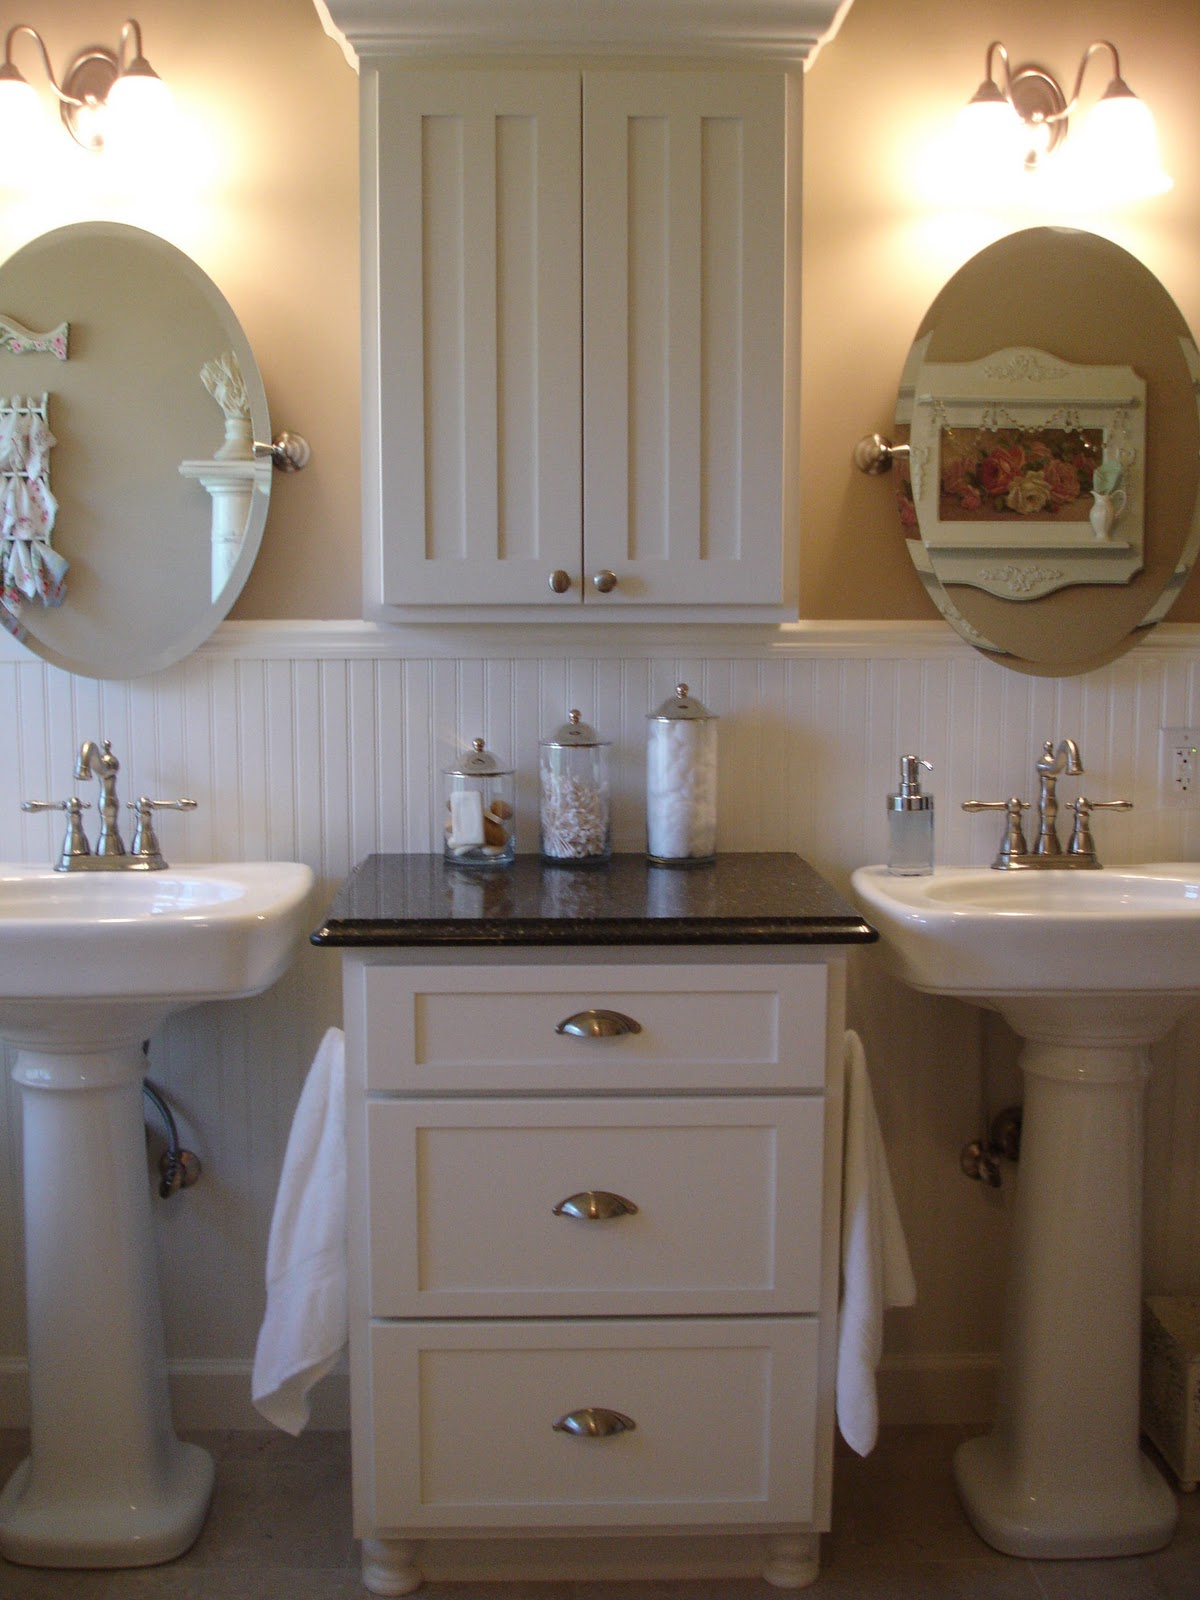 Forever Decorating!: My Master BathRoom Update!